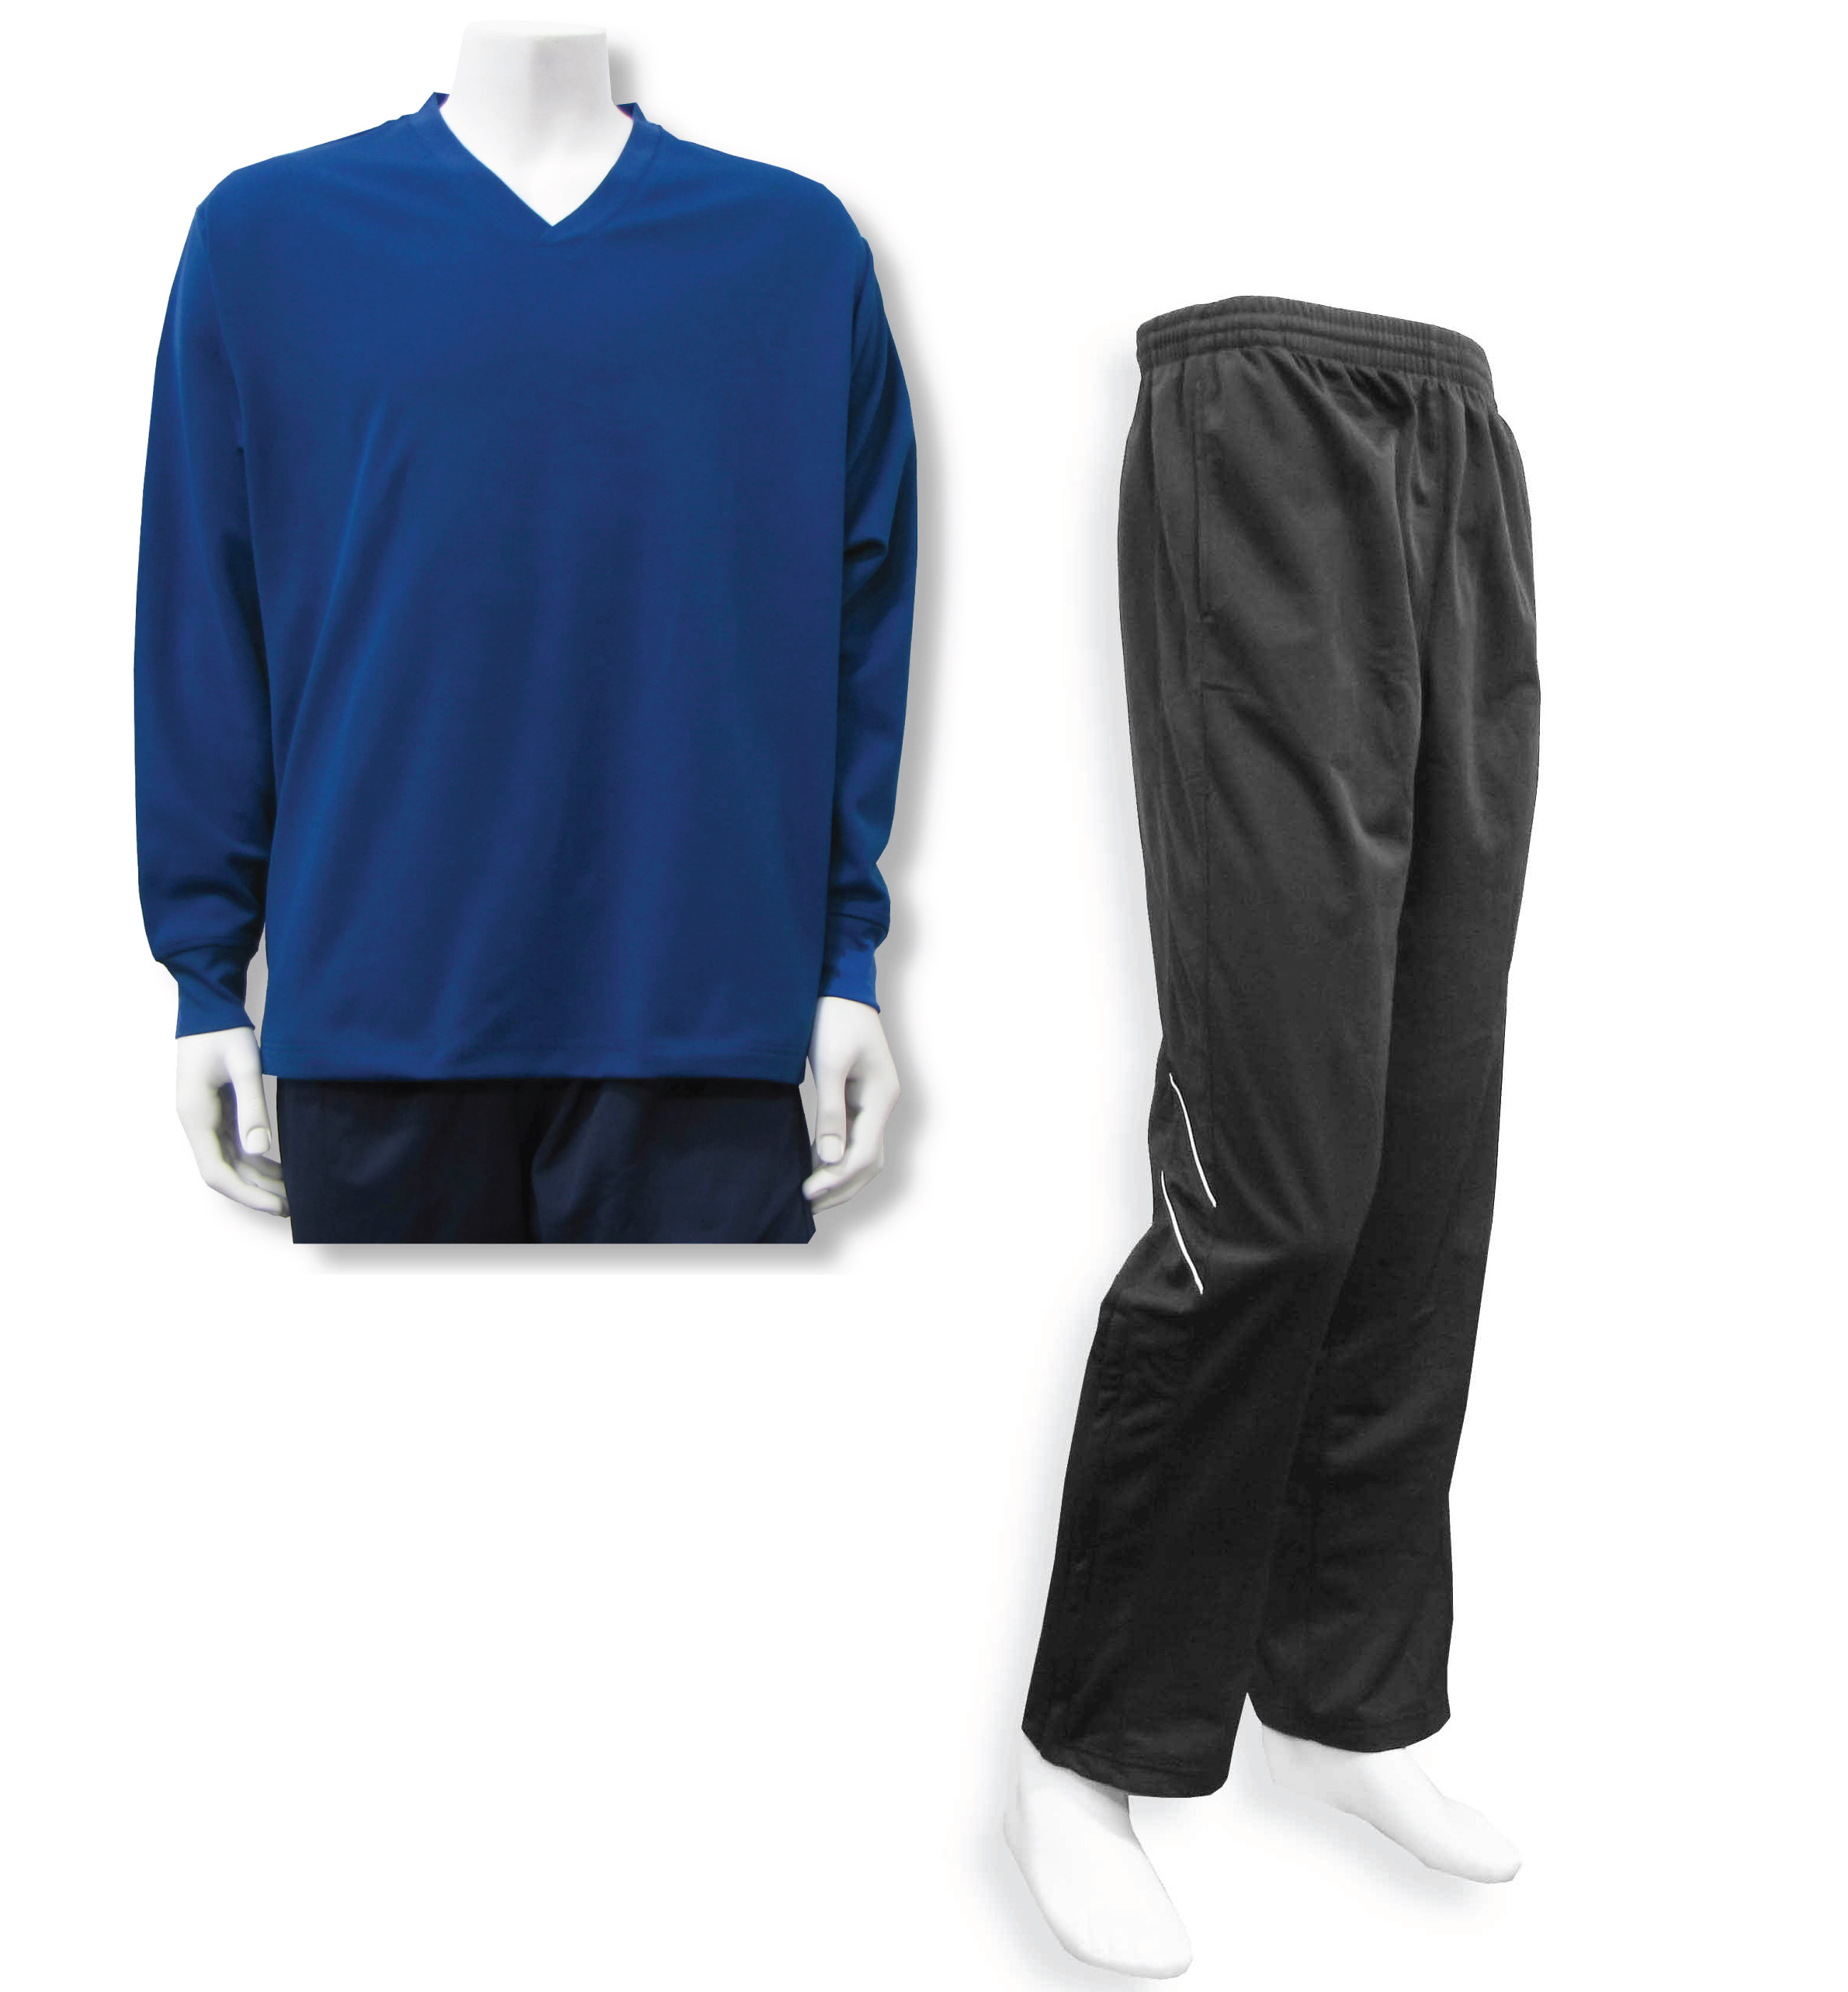 Men's casual track suit in navy / black by Code Four Athletics